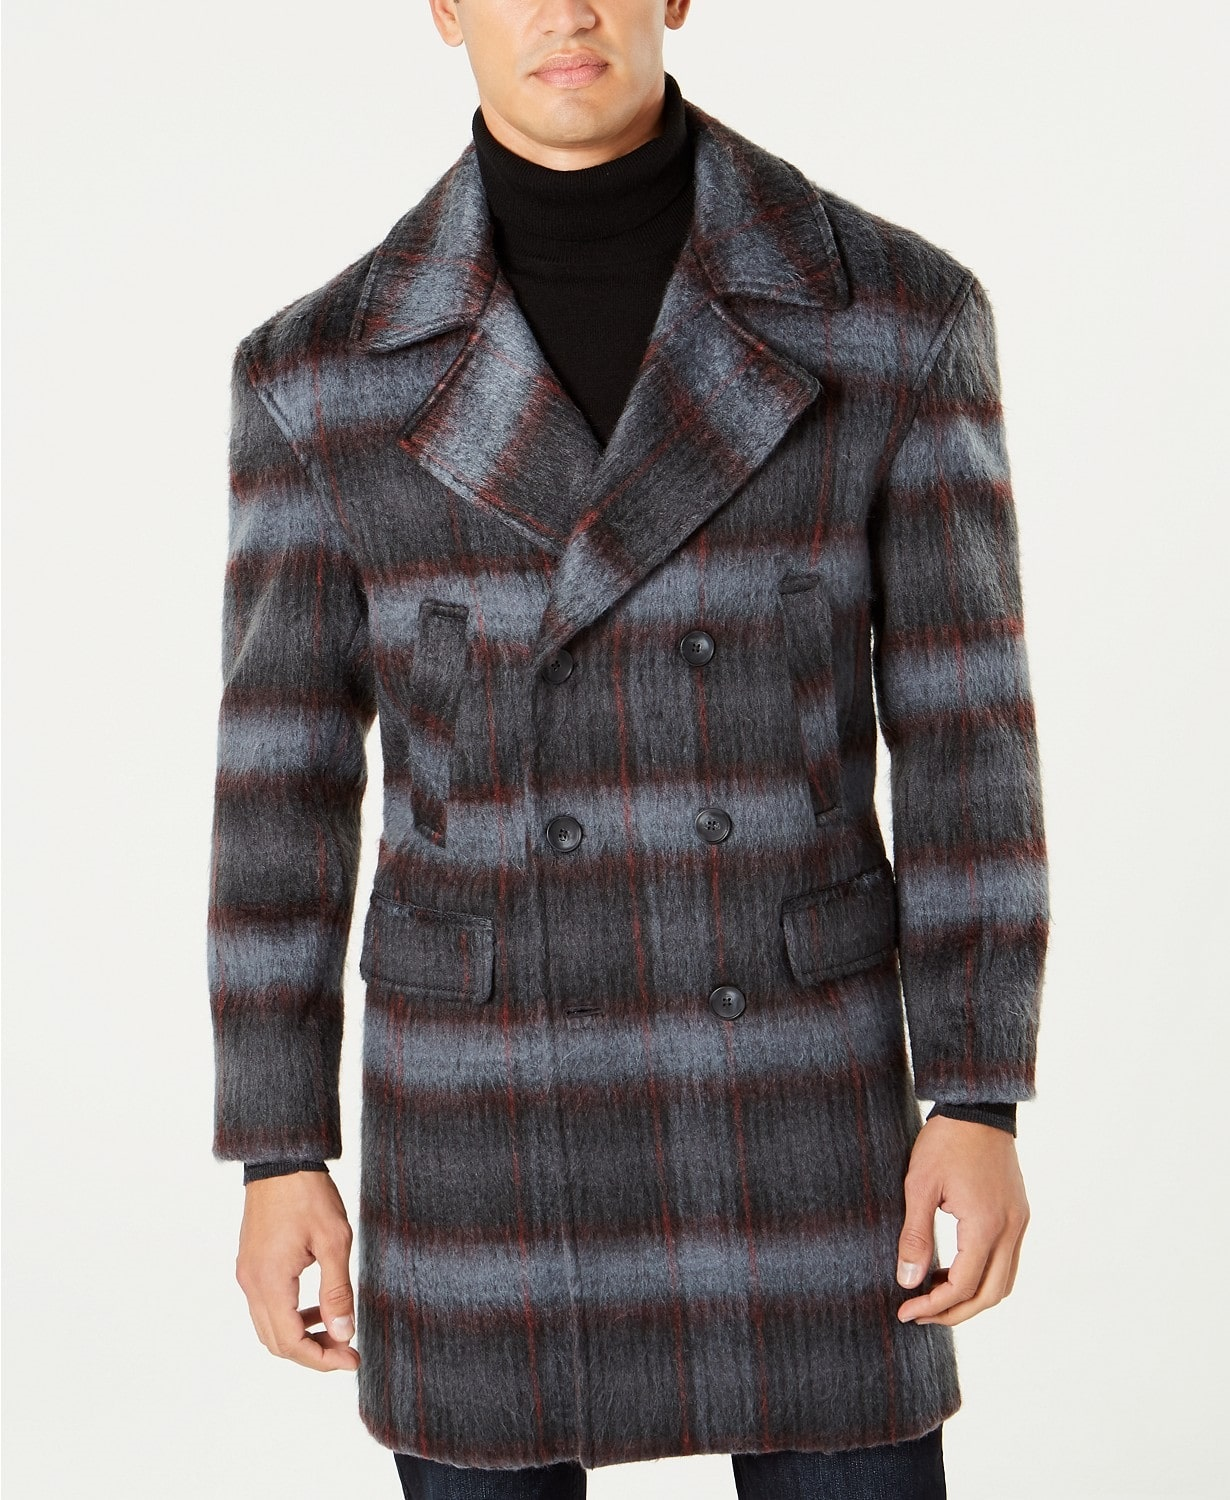 Break the Winter Chill Men's Winter Coats, men's topcoat, plaid topcoat, I.N.C. Men's Grunge Plaid Topcoat